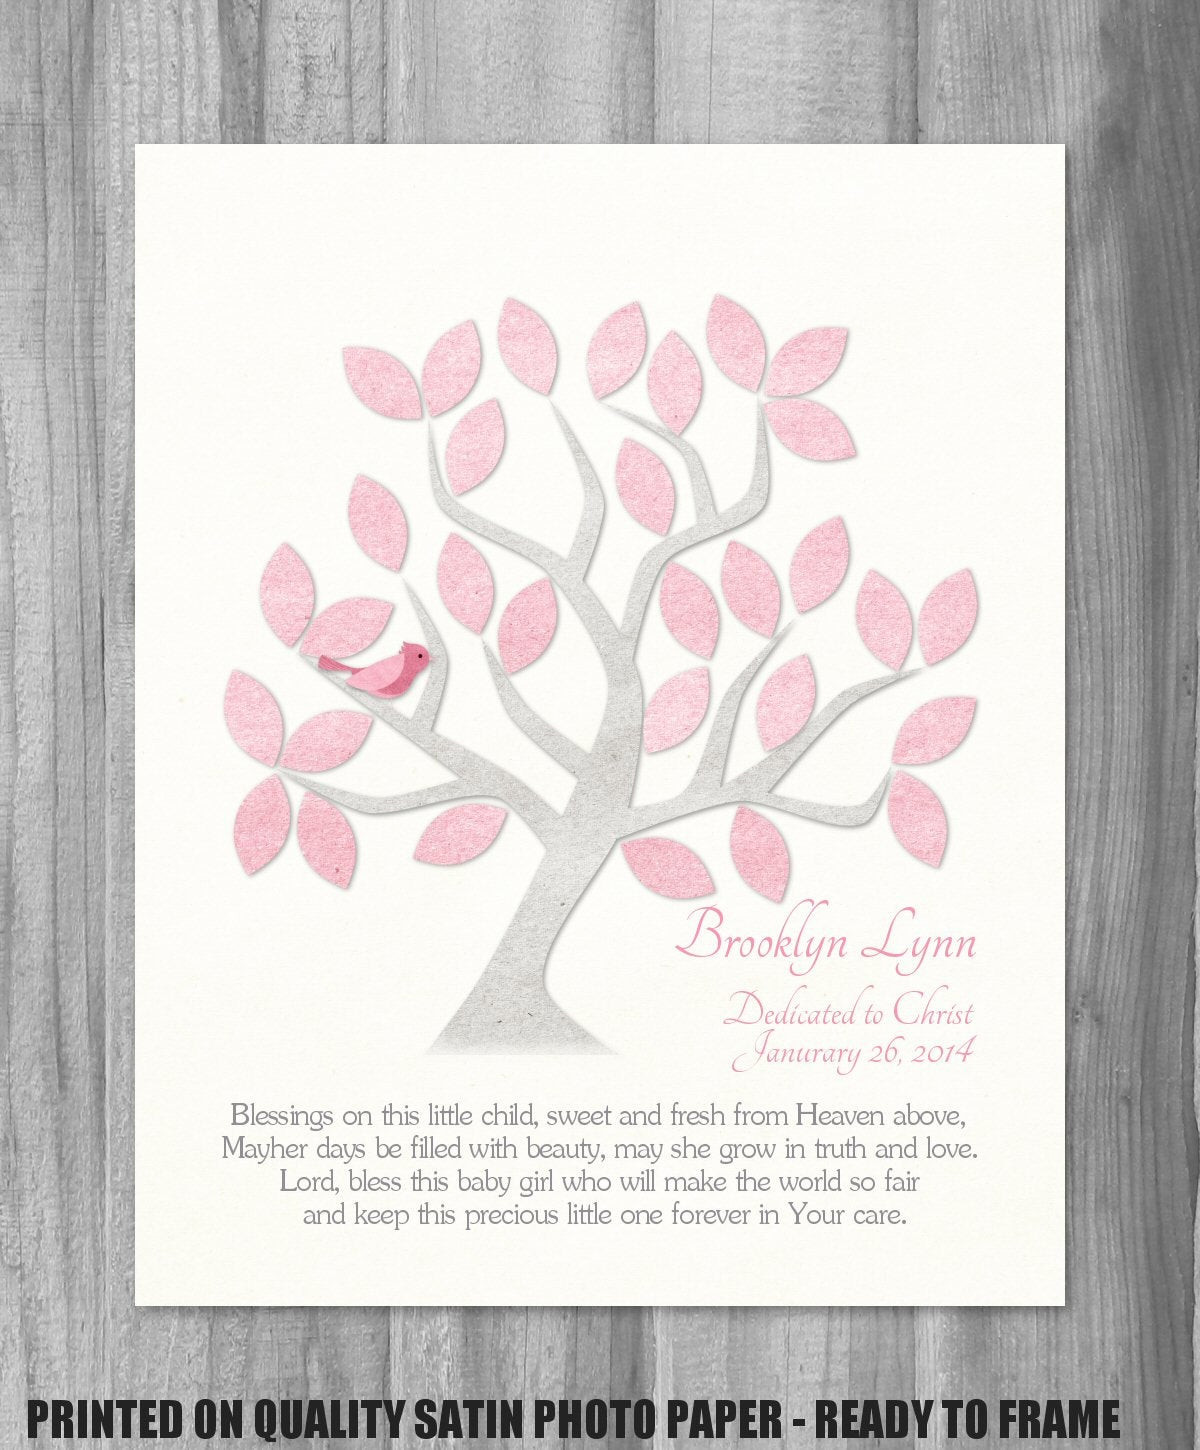 Best ideas about Baby Dedication Gift Ideas . Save or Pin Dedication Gift Baby Girl Baptism Canvas Print Blessing Quote Now.